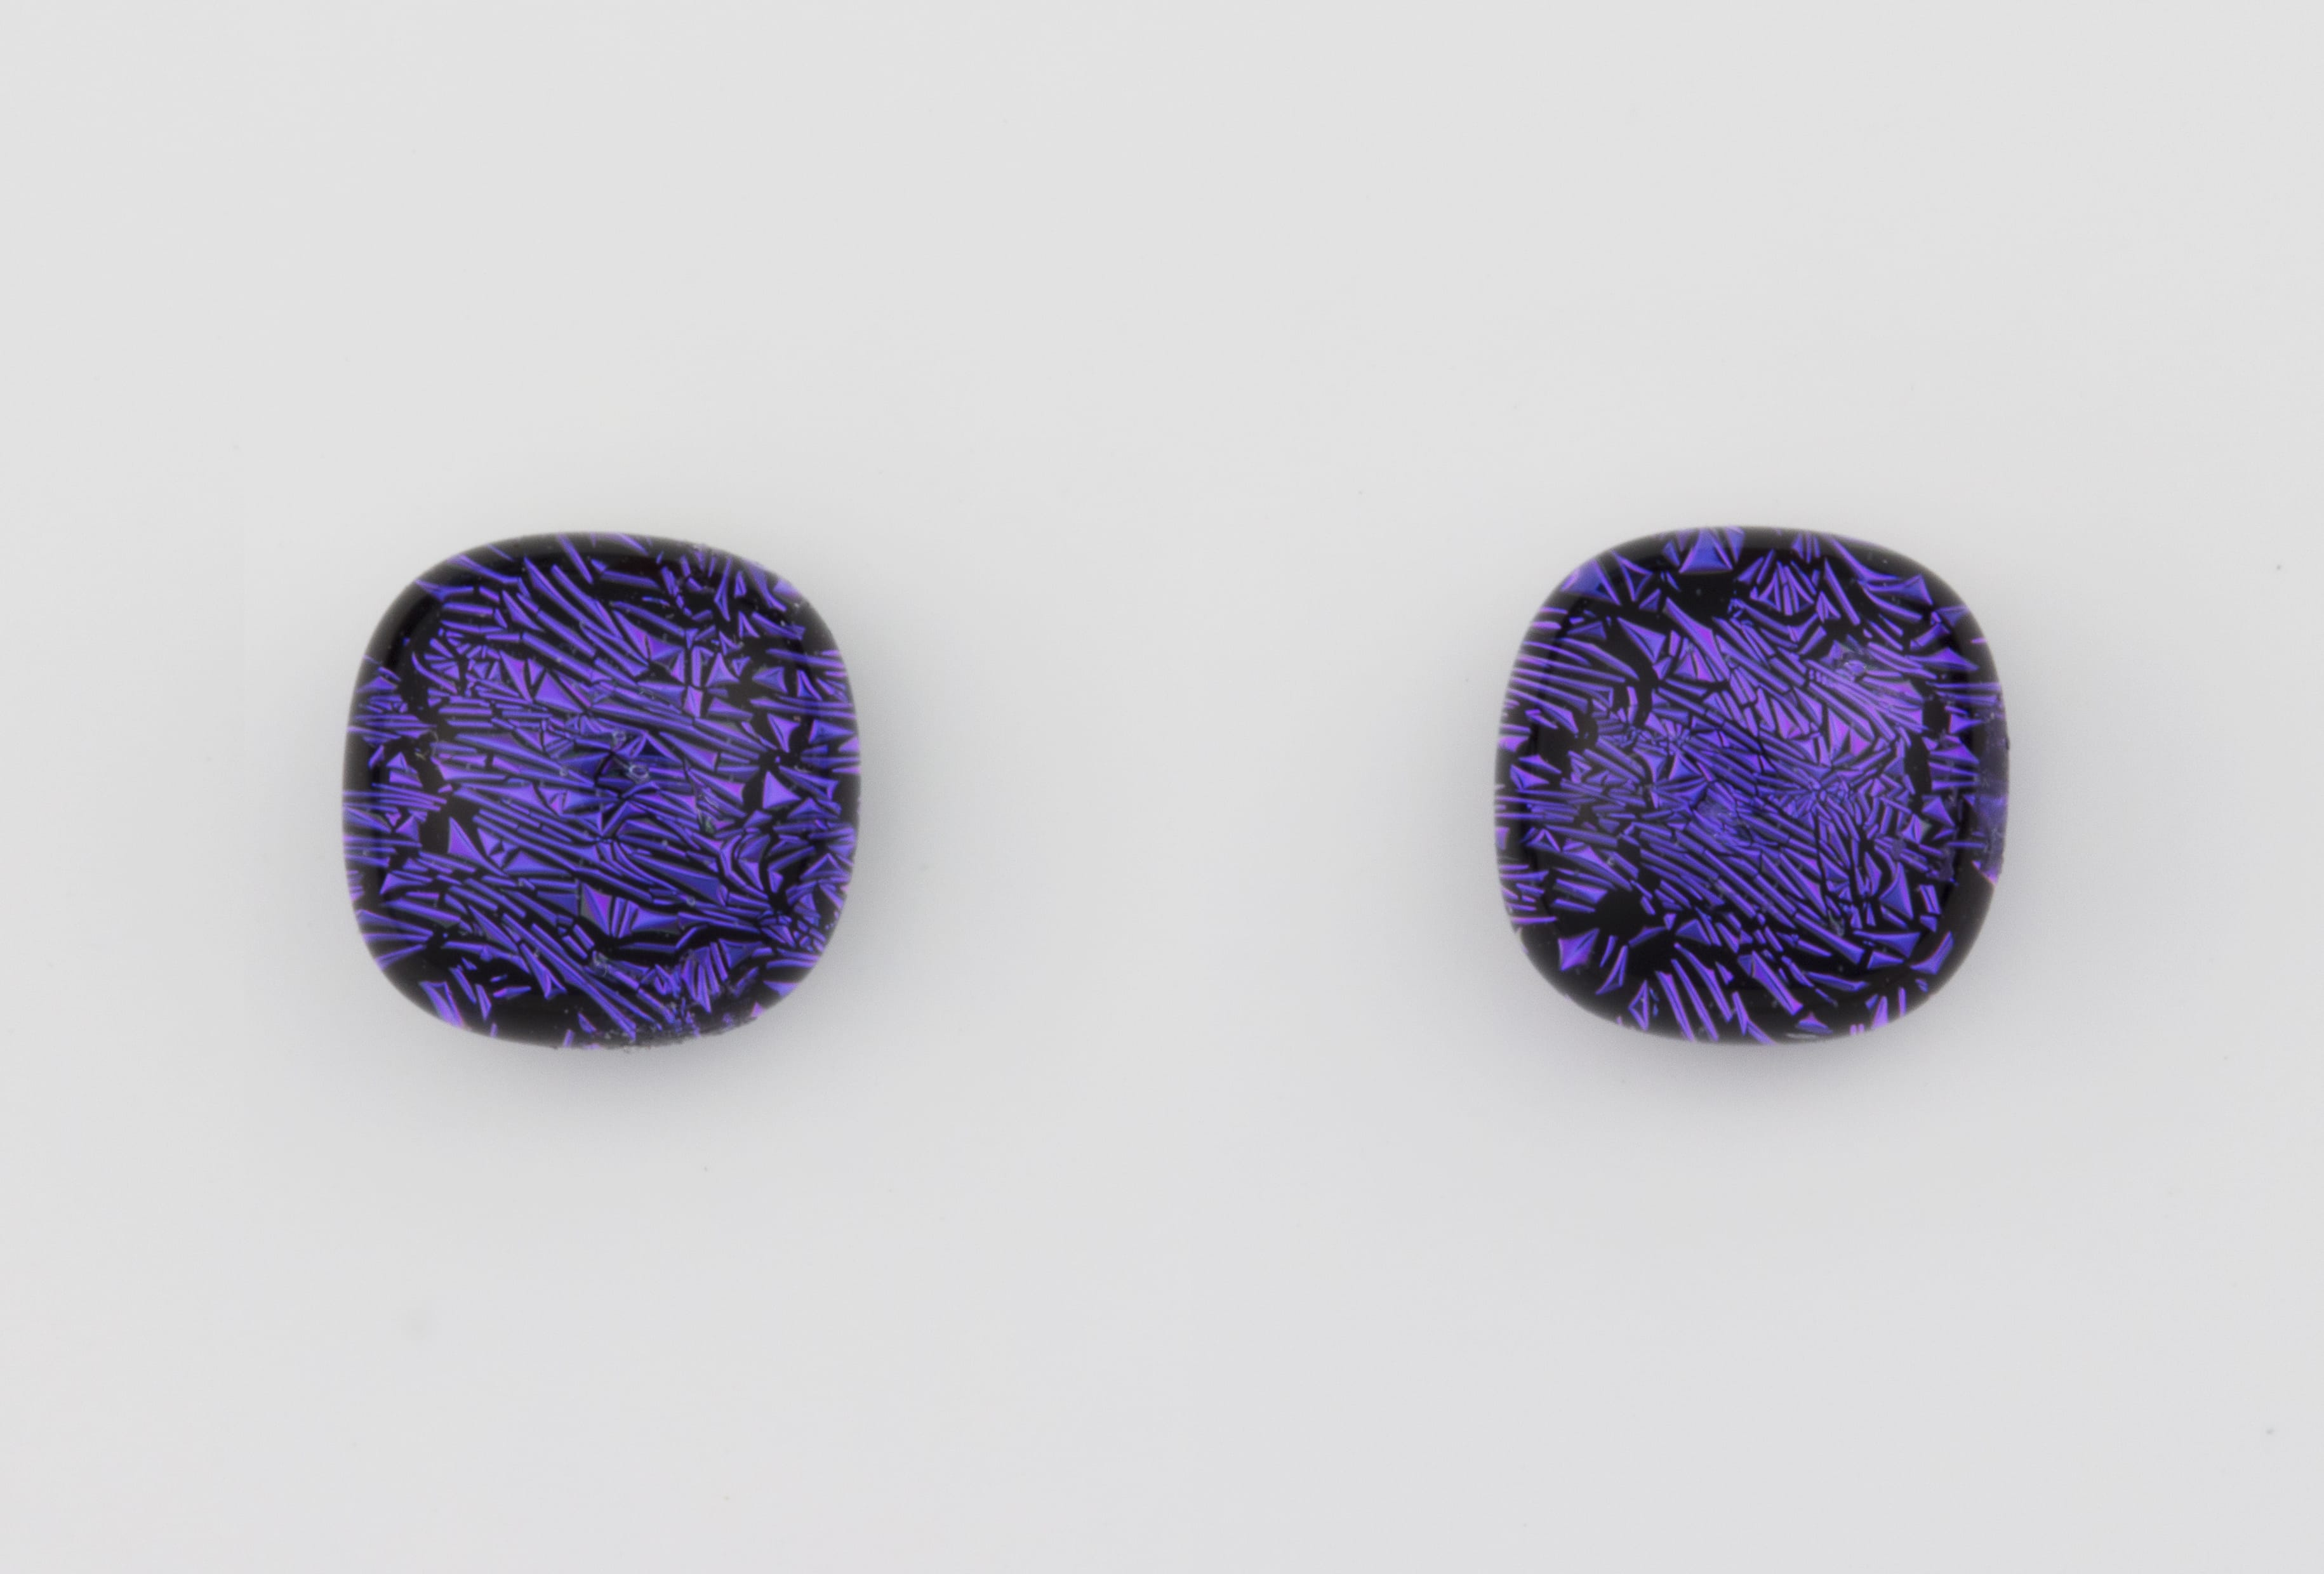 Dichroic glass jewellery uk, handmade stud earrings with purple dichroic glass, round, sterling glass 7-9mm, silver posts.